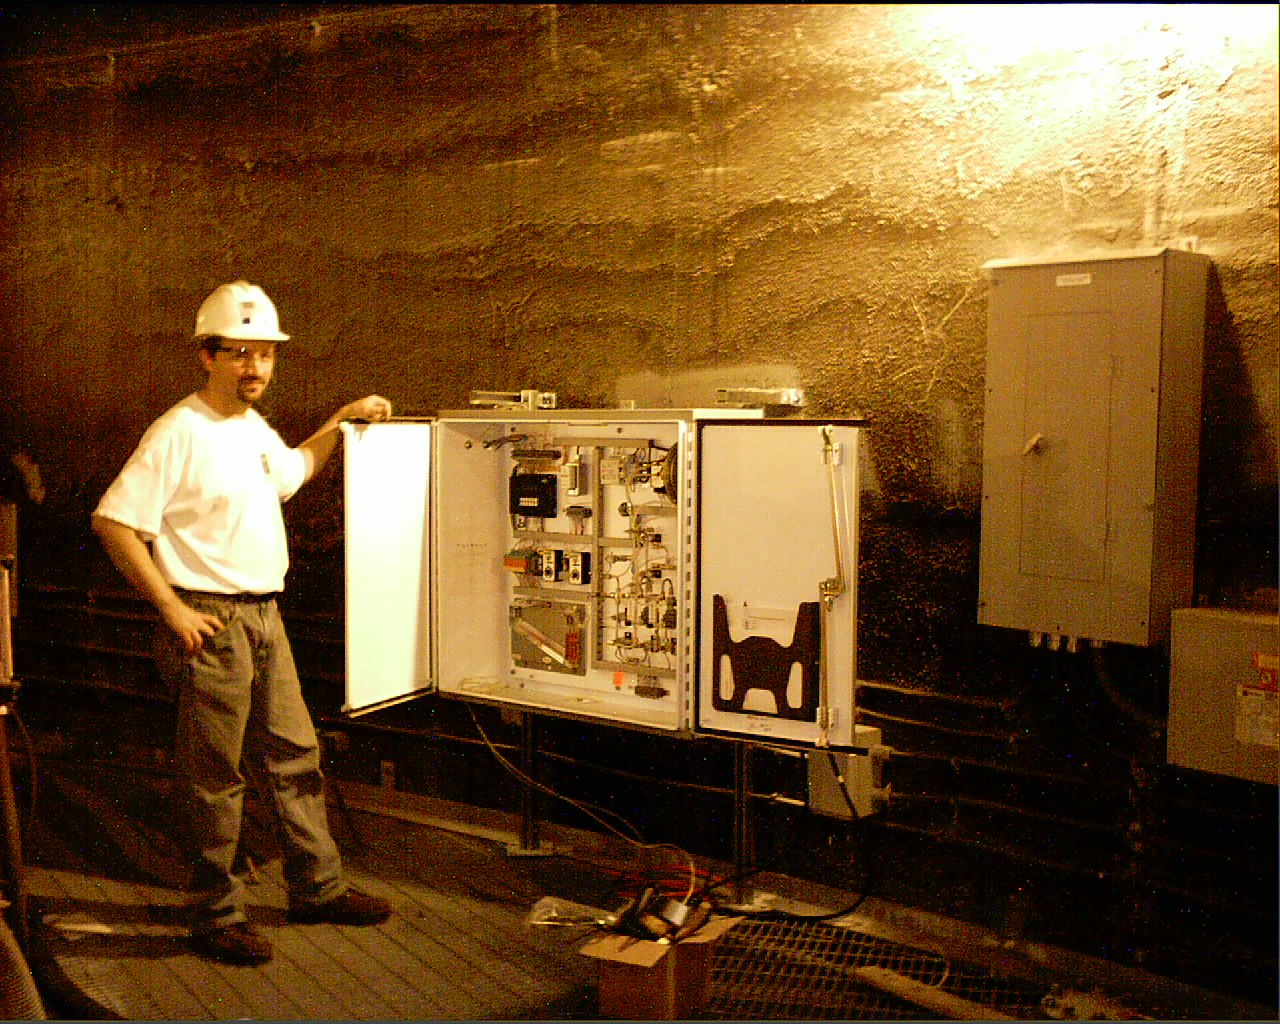 Worker standing by CEMflow box